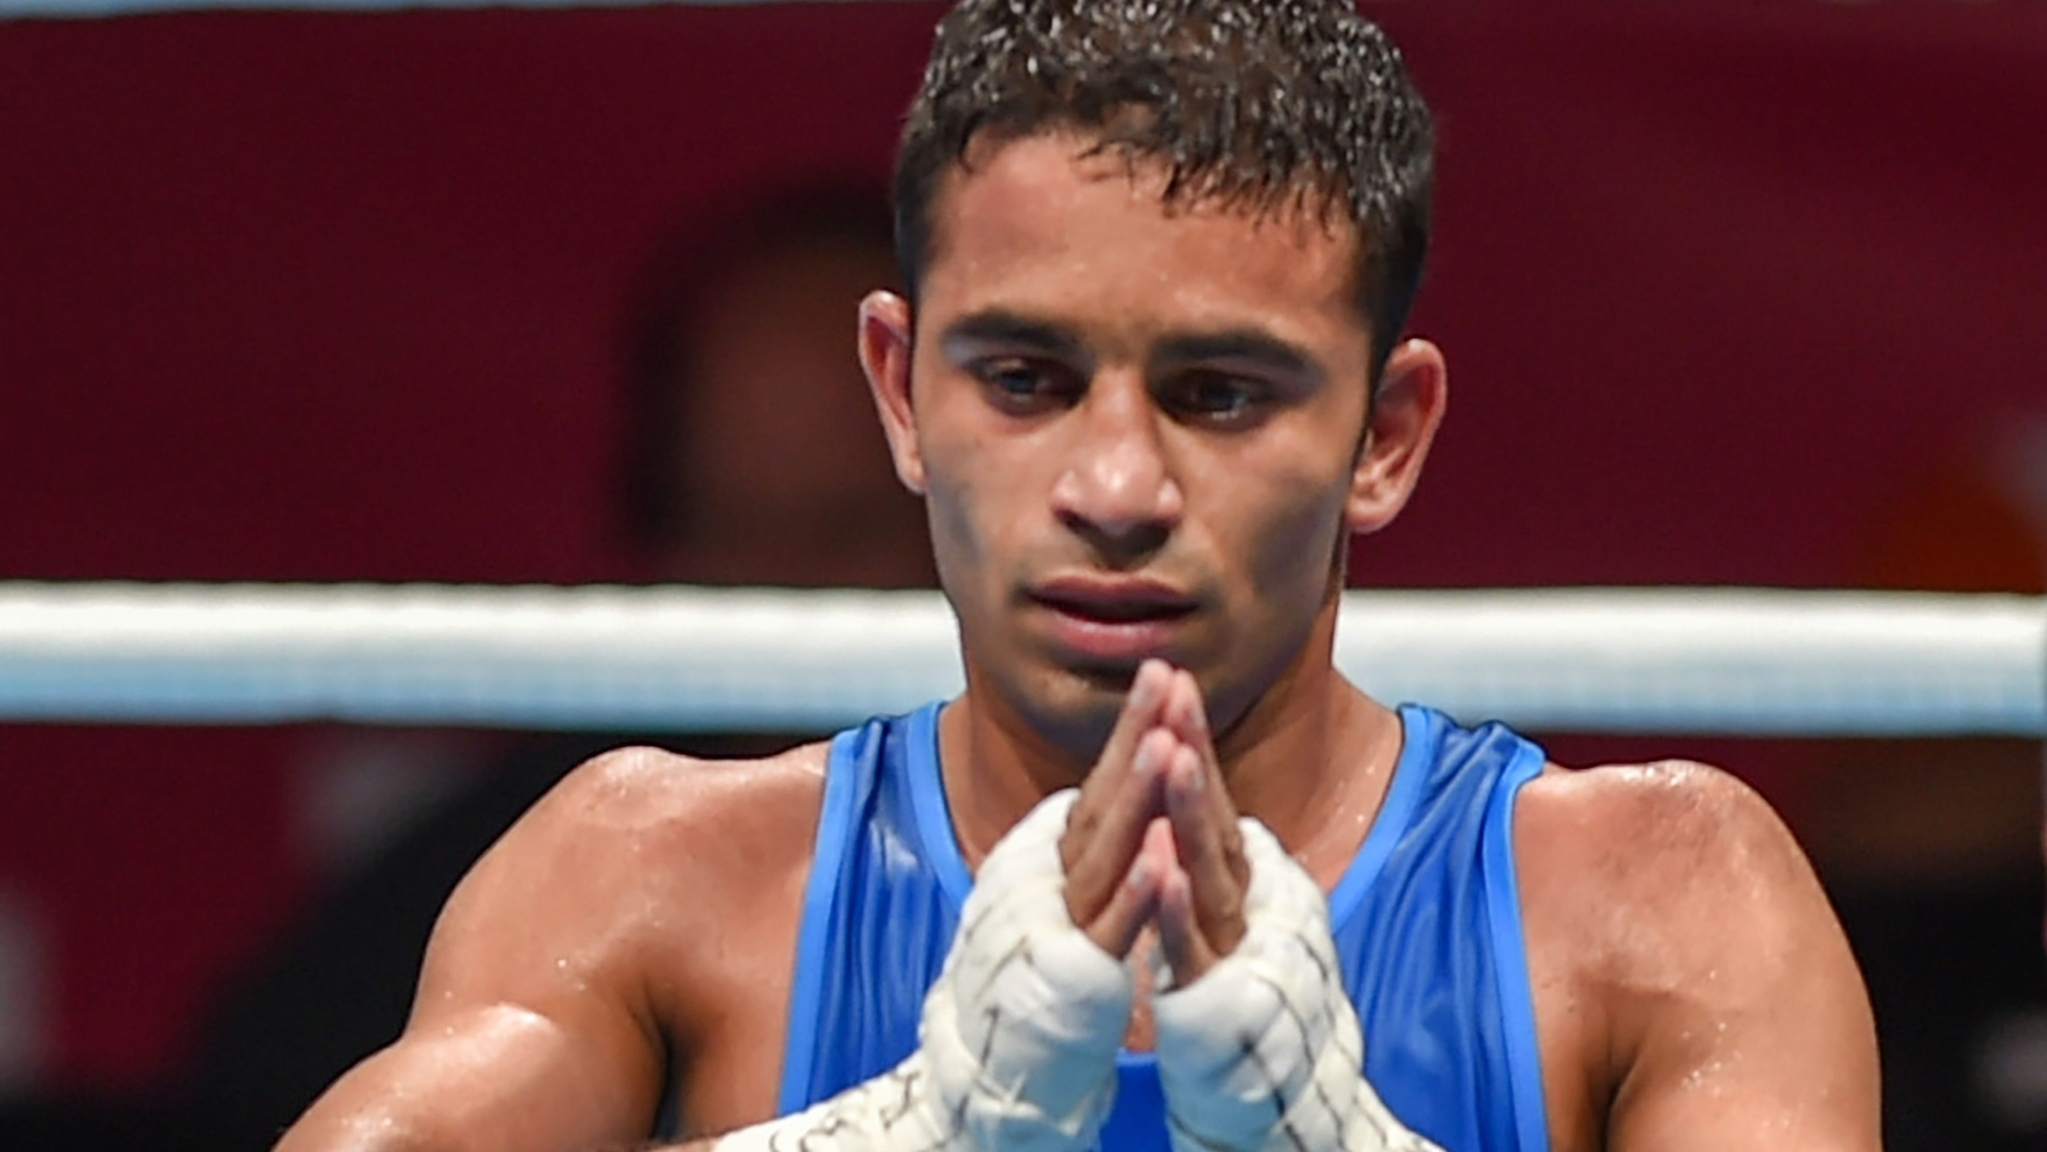 Asiad Gold Medallist Amit Panghal Forced to Change Categories